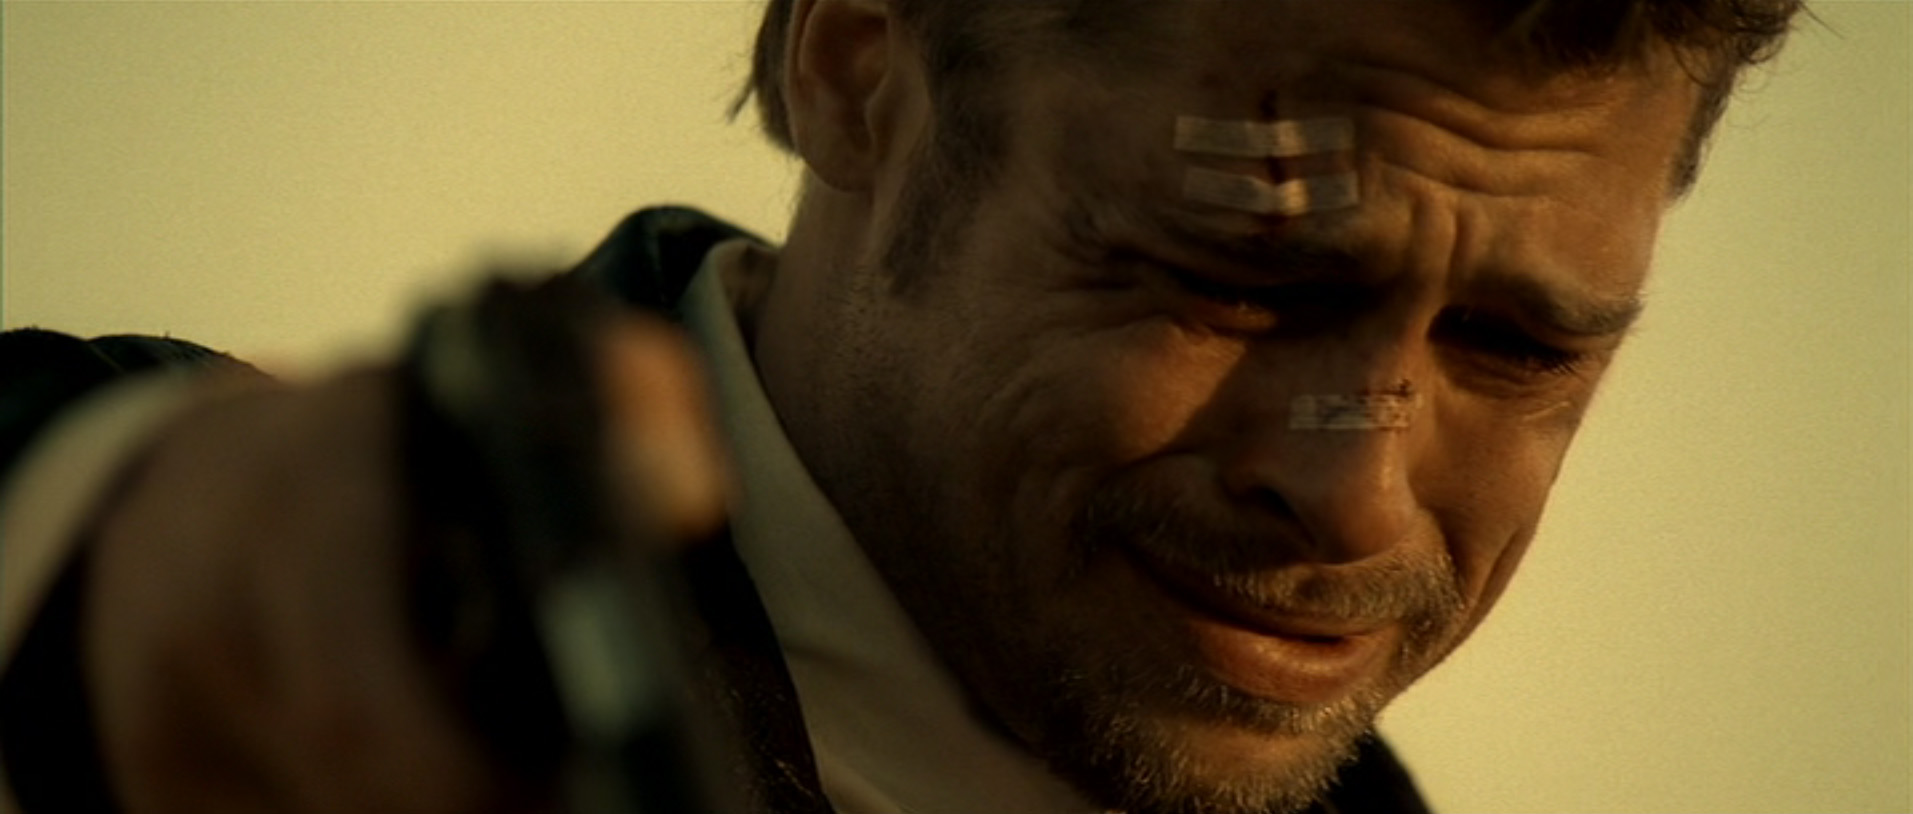 True Detective Season 2: Why Brad Pitt is a terrible option